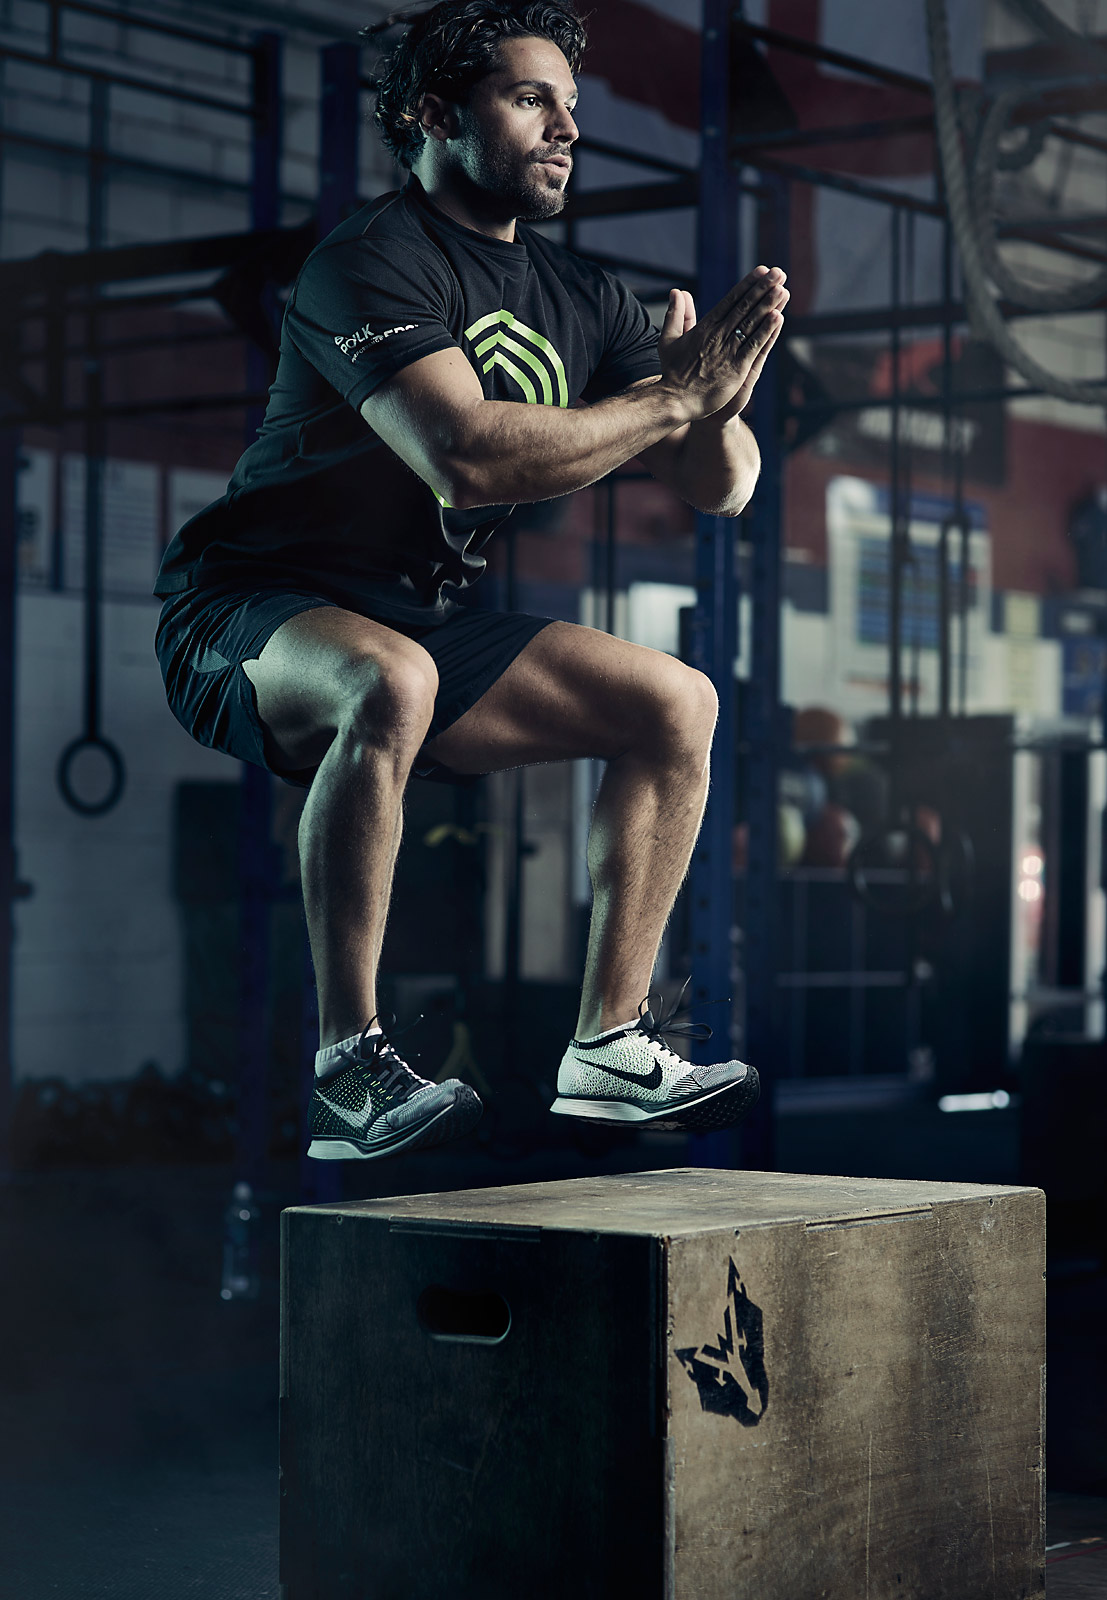 Bulk Powders – Crossfit box jump